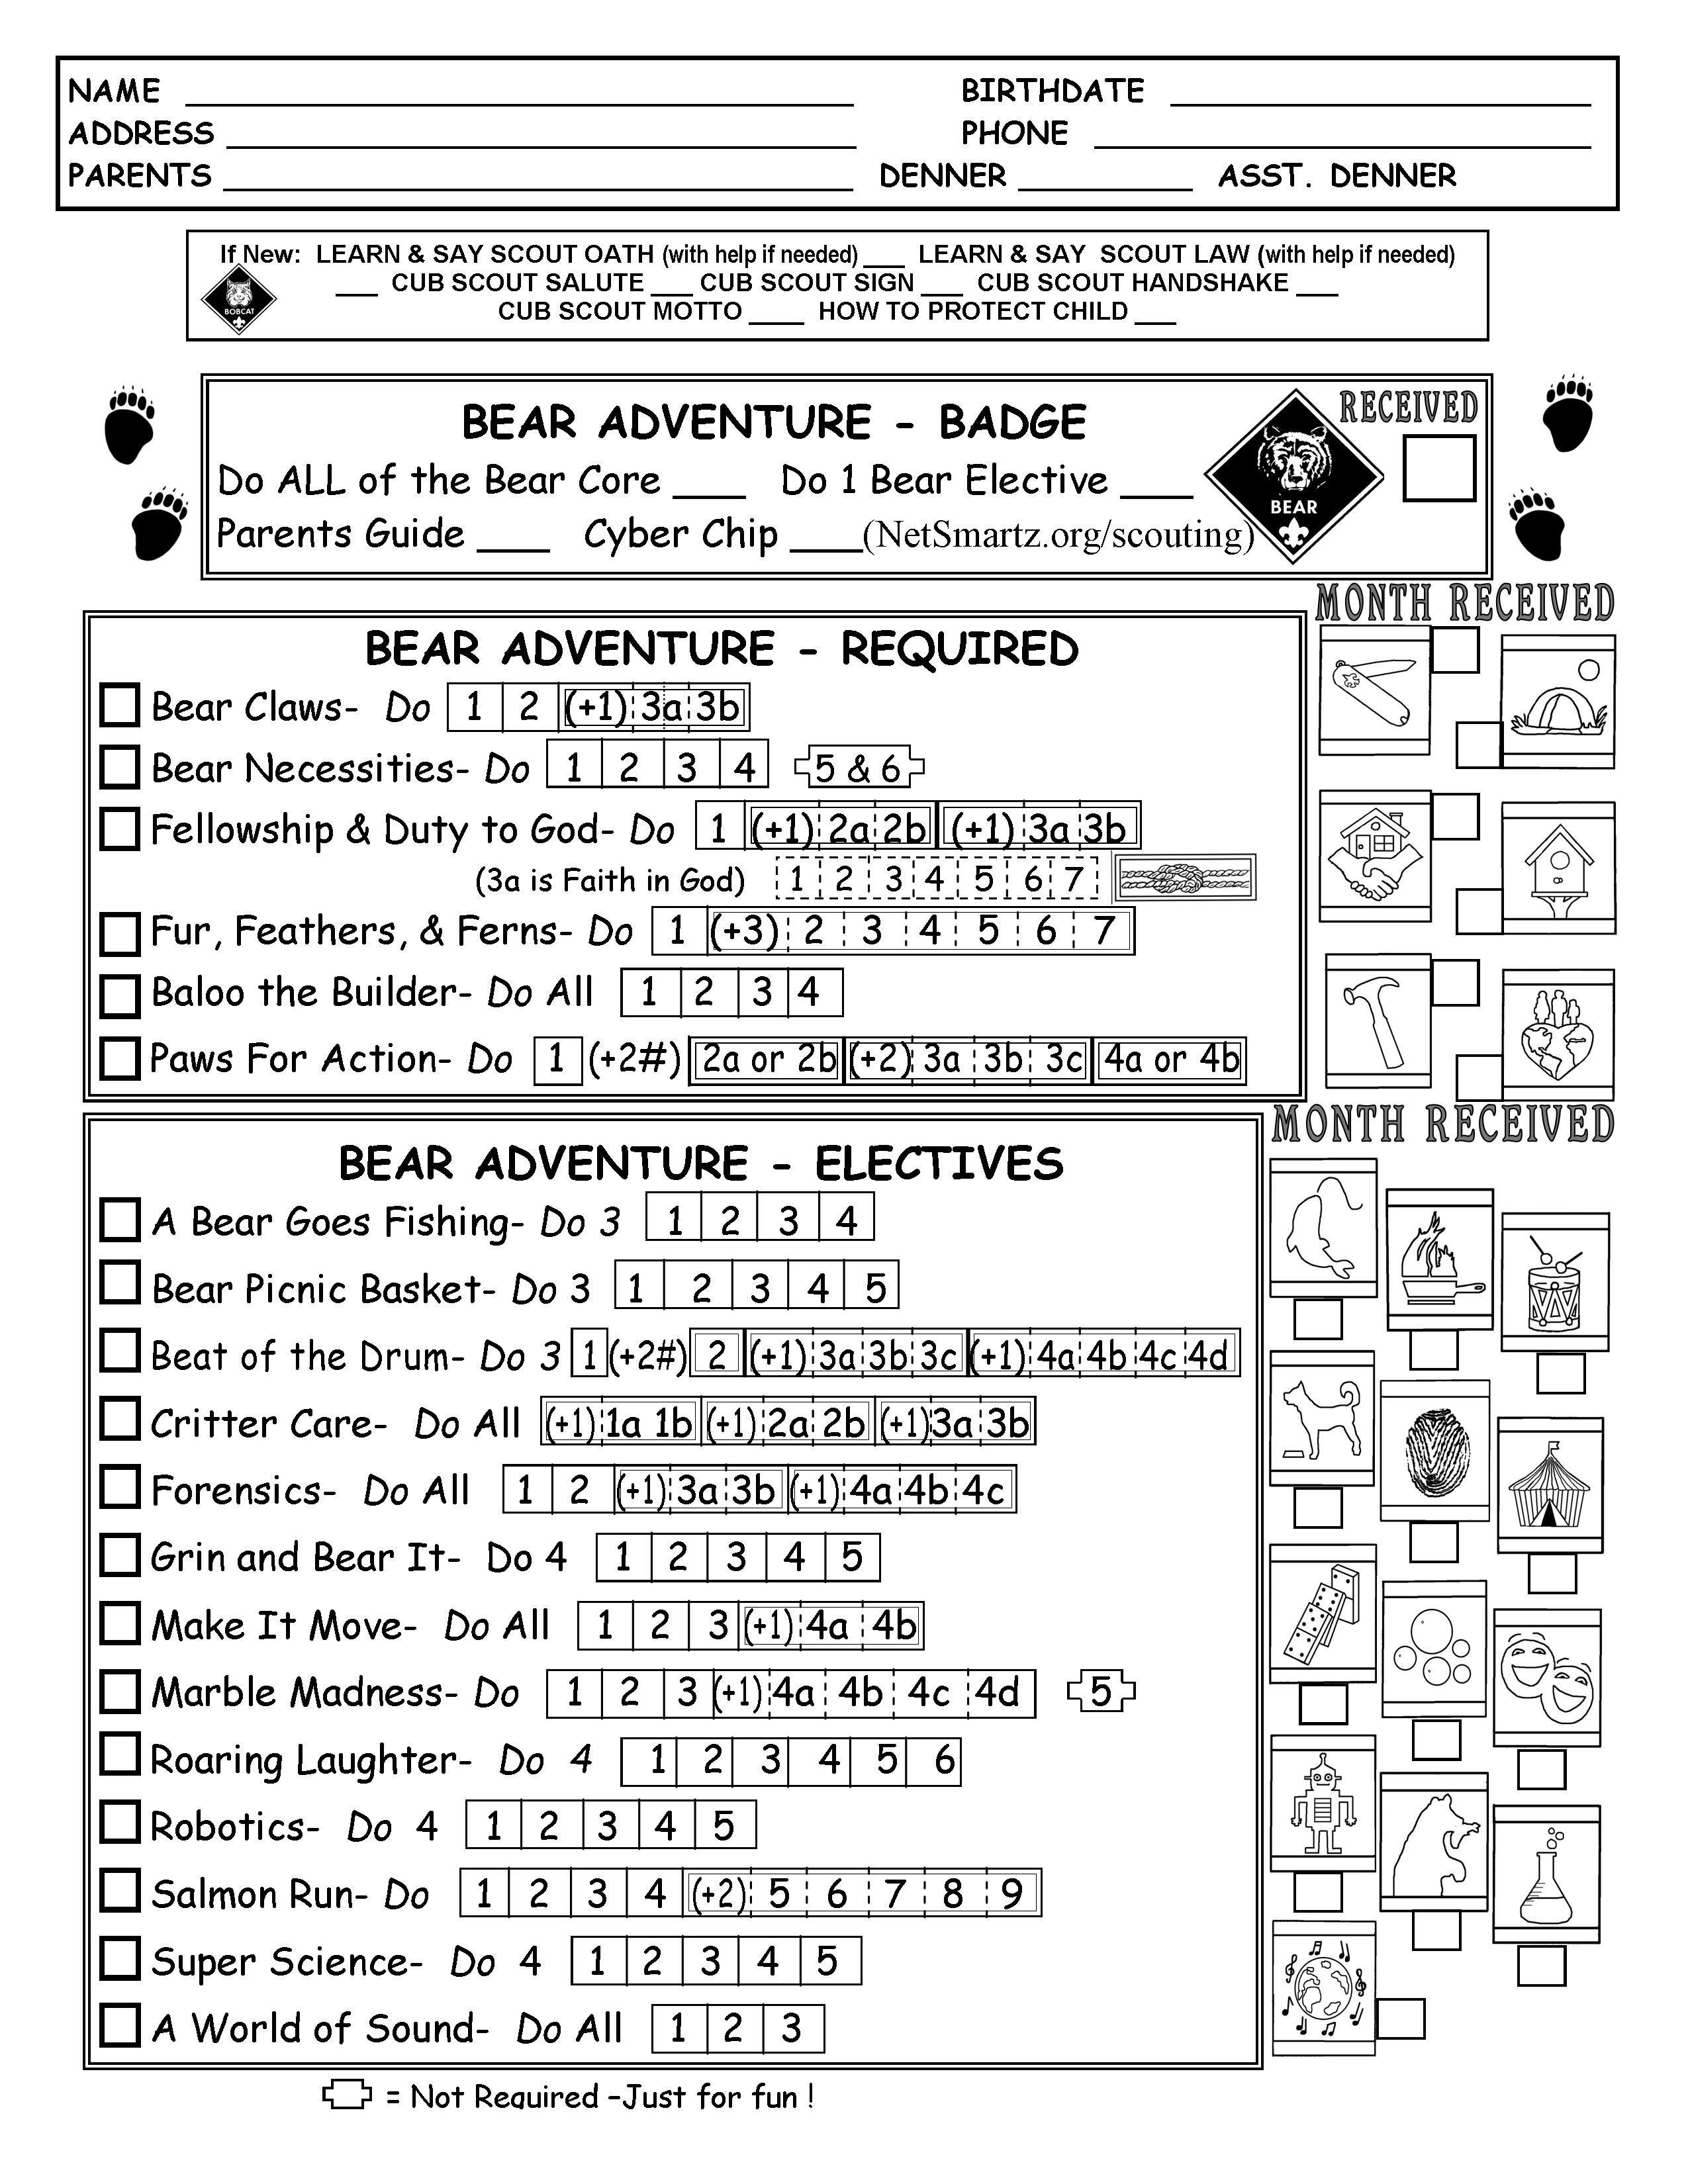 Cub Scout Bear Tracking Sheet Record With The New Modified